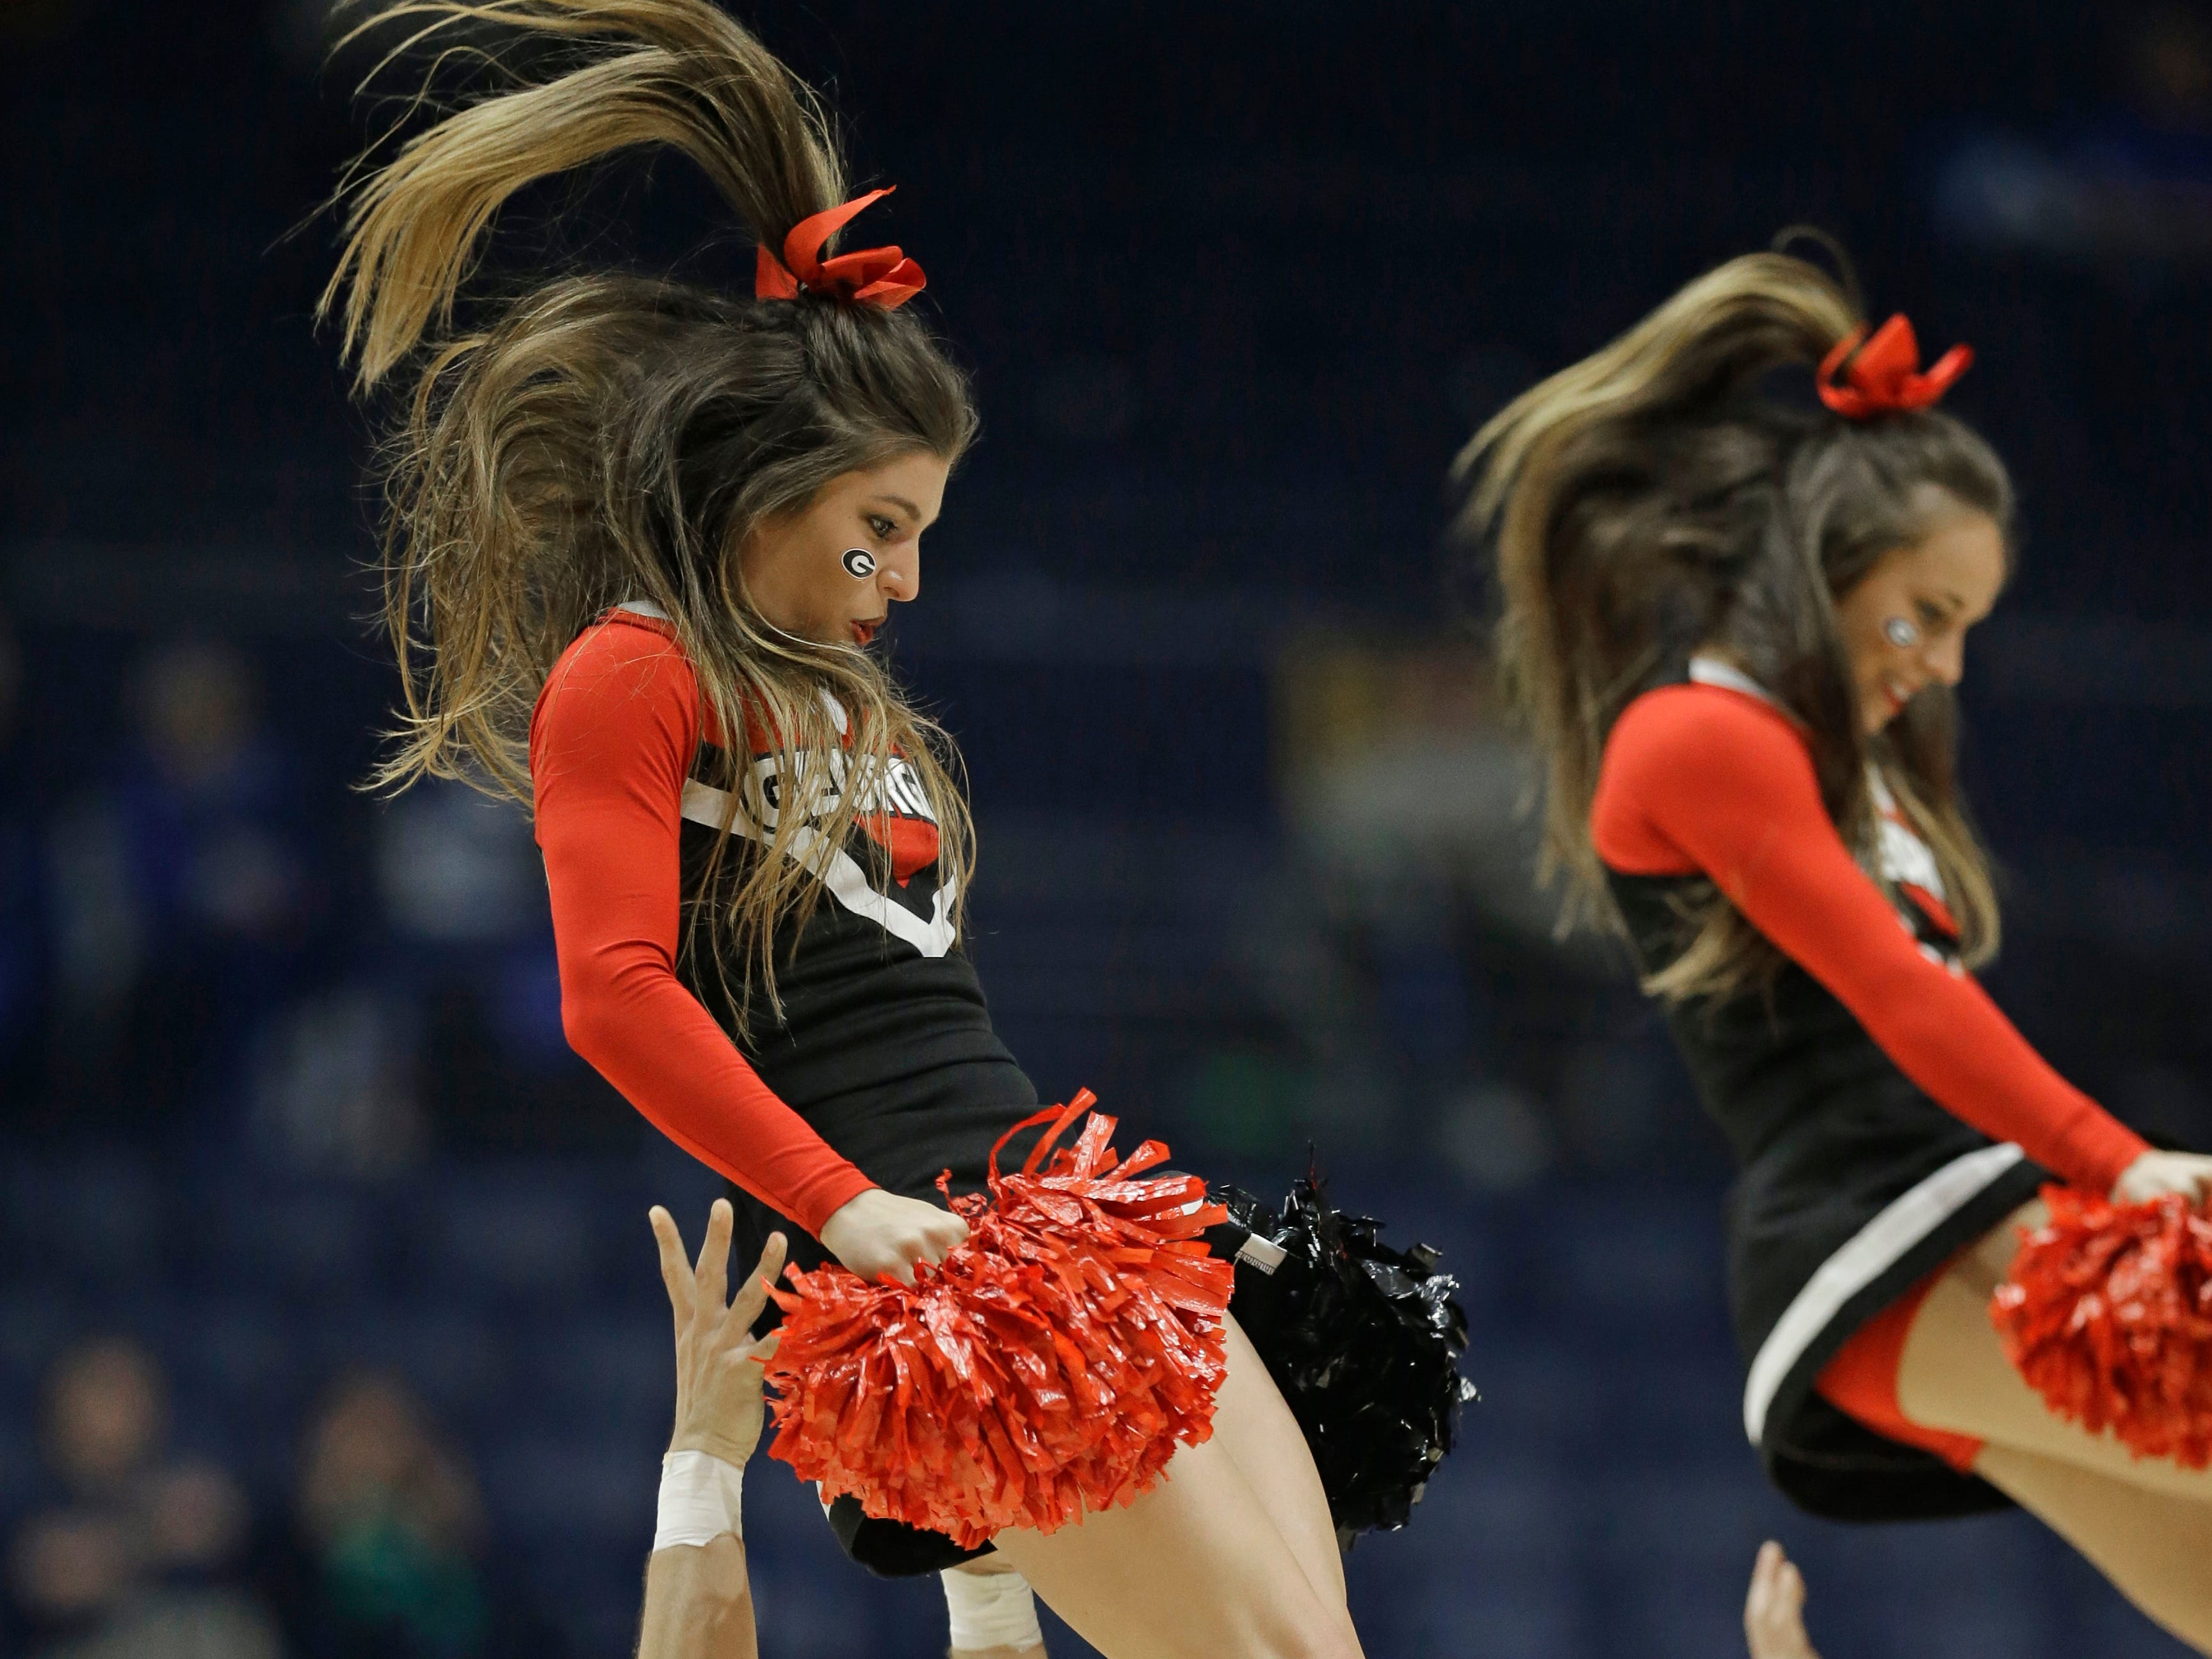 Georgia cheerleaders perform during the second half of an NCAA college basketball game against South Carolina in the Southeastern Conference tournament in Nashville, Tenn., Friday, March 11, 2016. (AP Photo/Mark Humphrey)